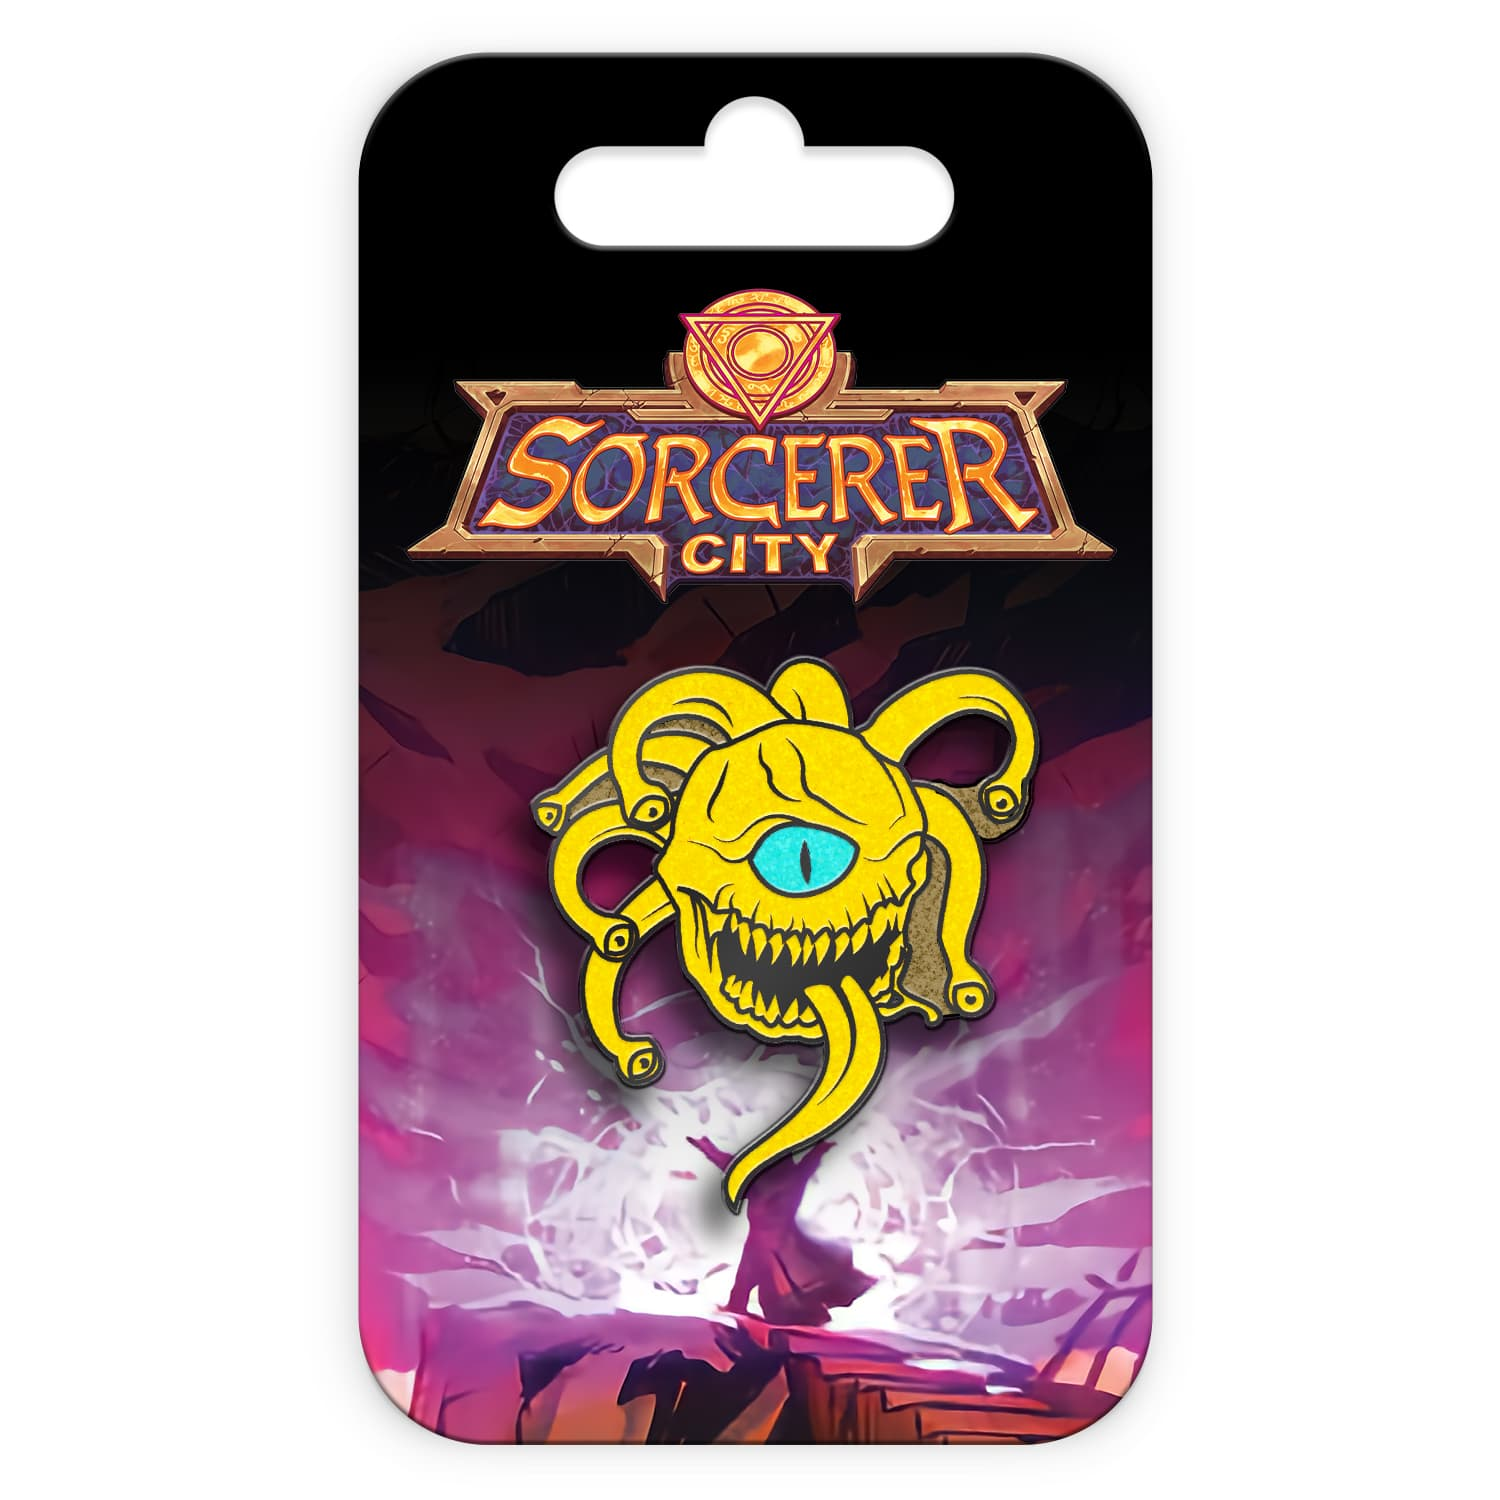 Sorcerer City - Gazer Pin